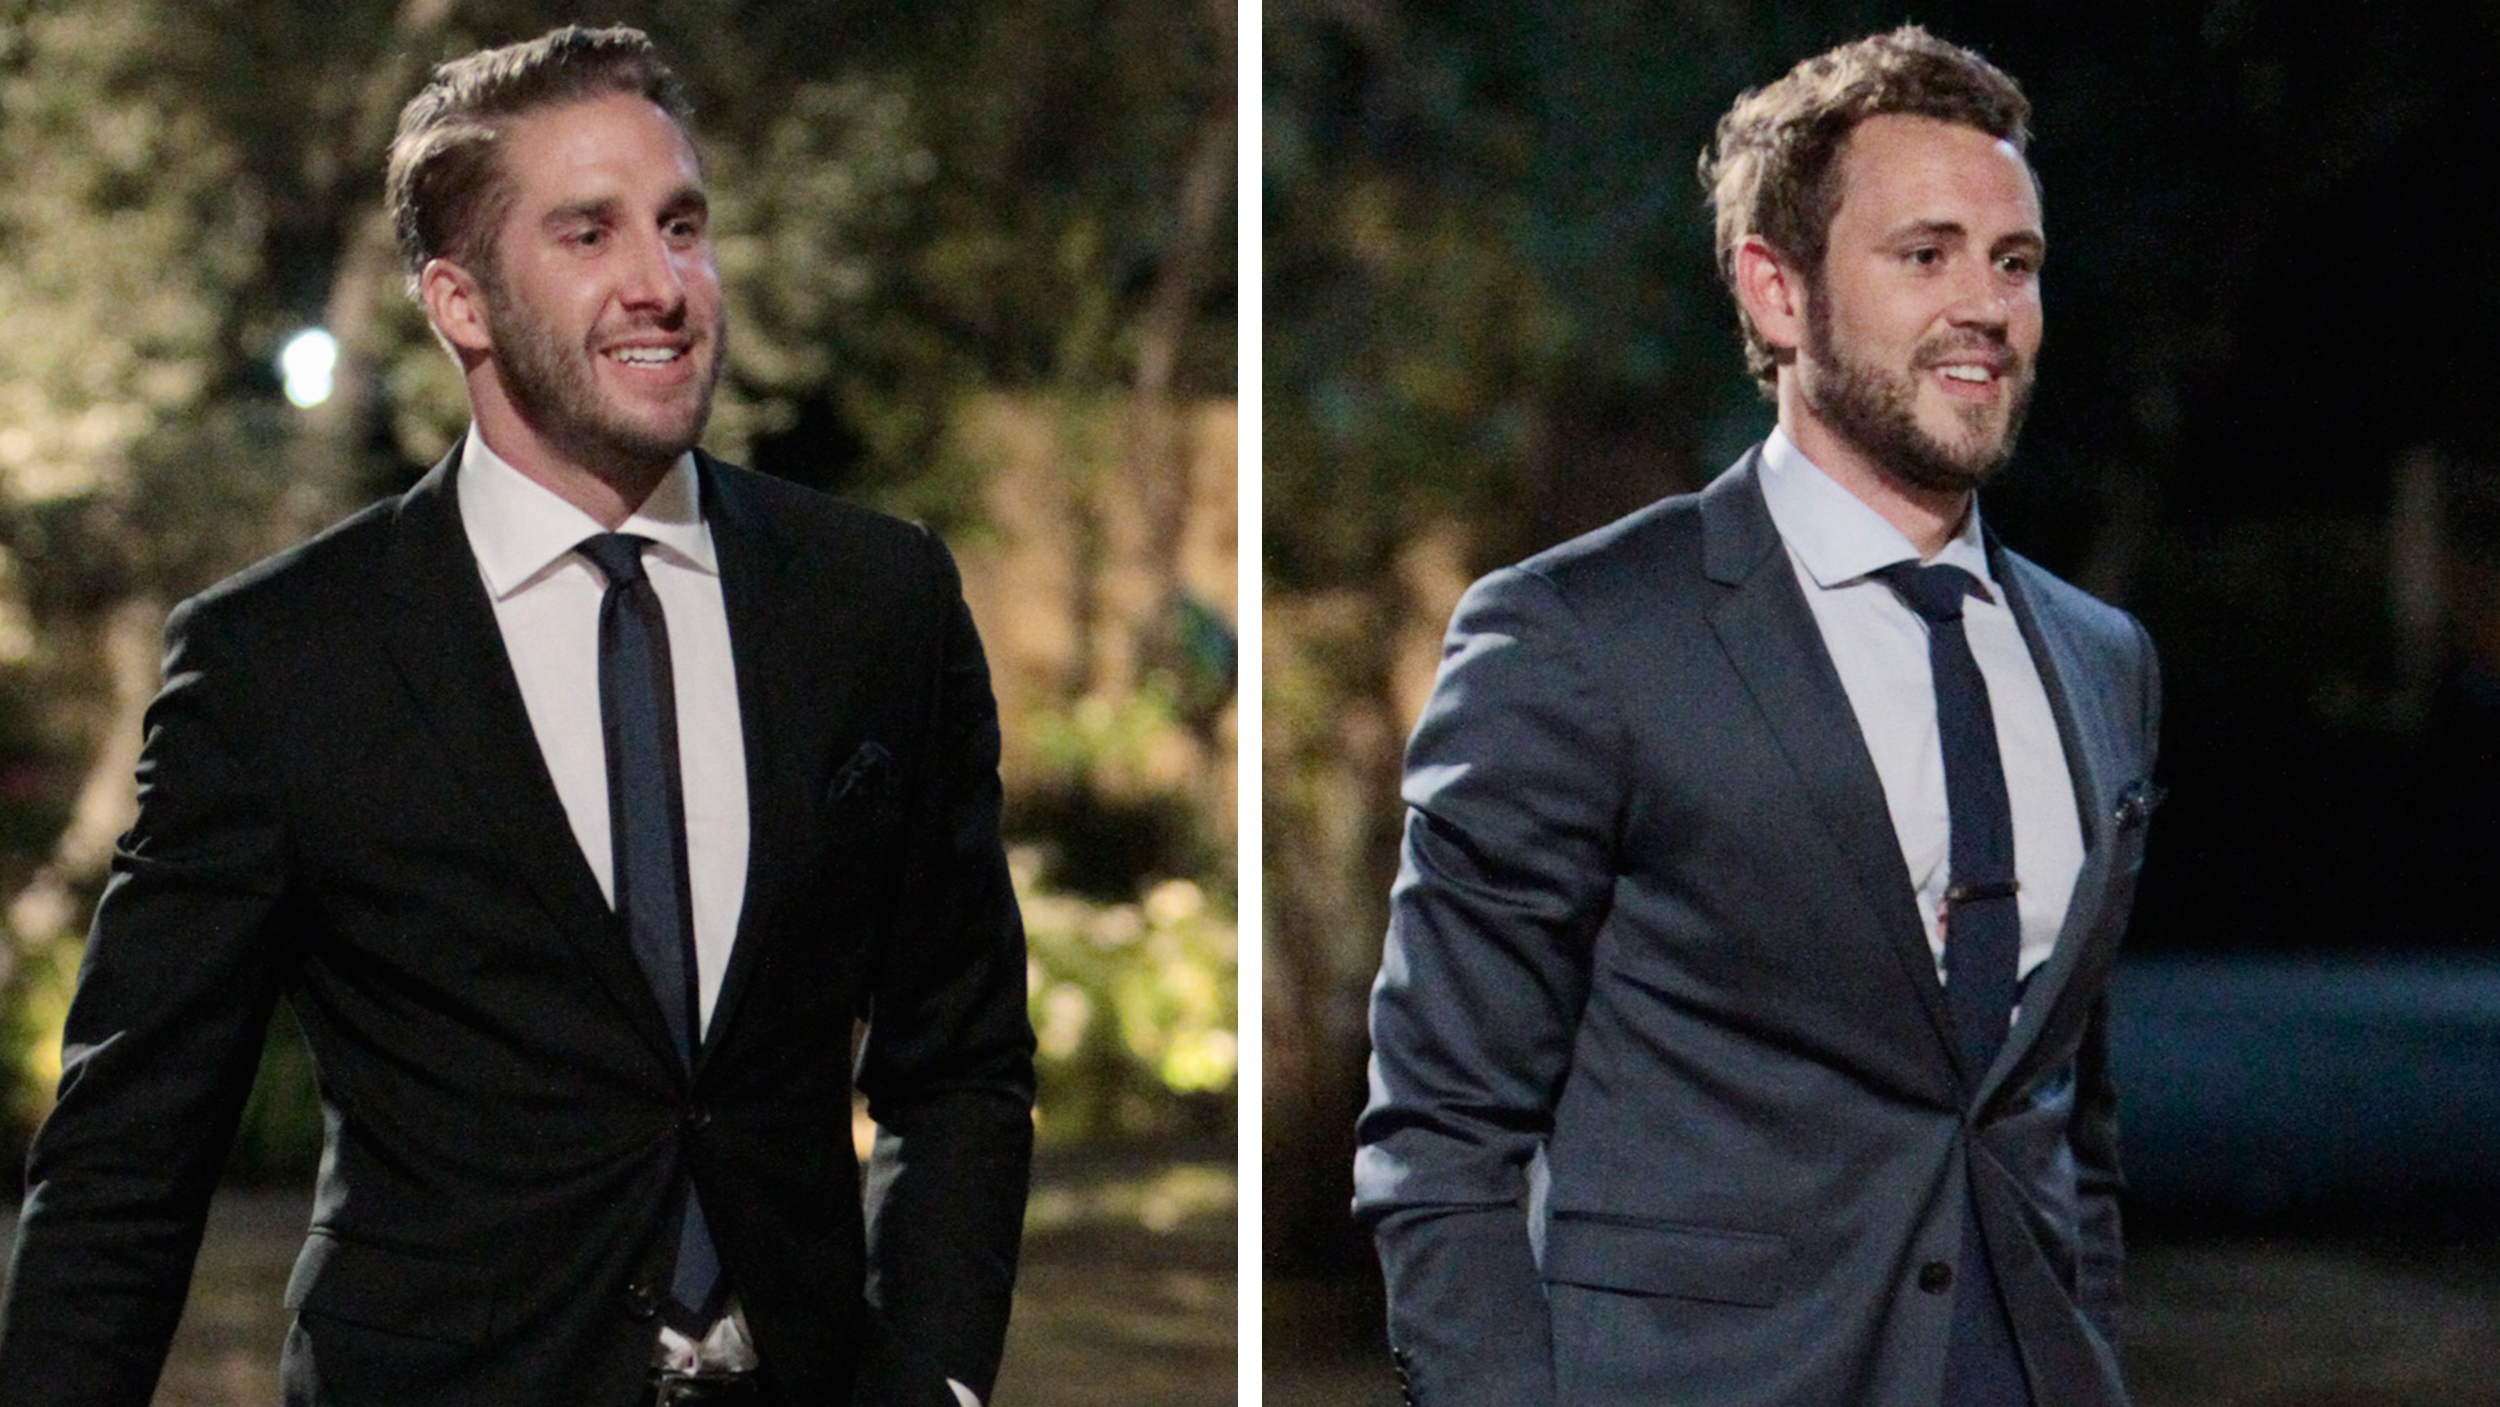 The Bachelorette Finale Recap Kaitlyn Bristowe Chooses Shawn Booth